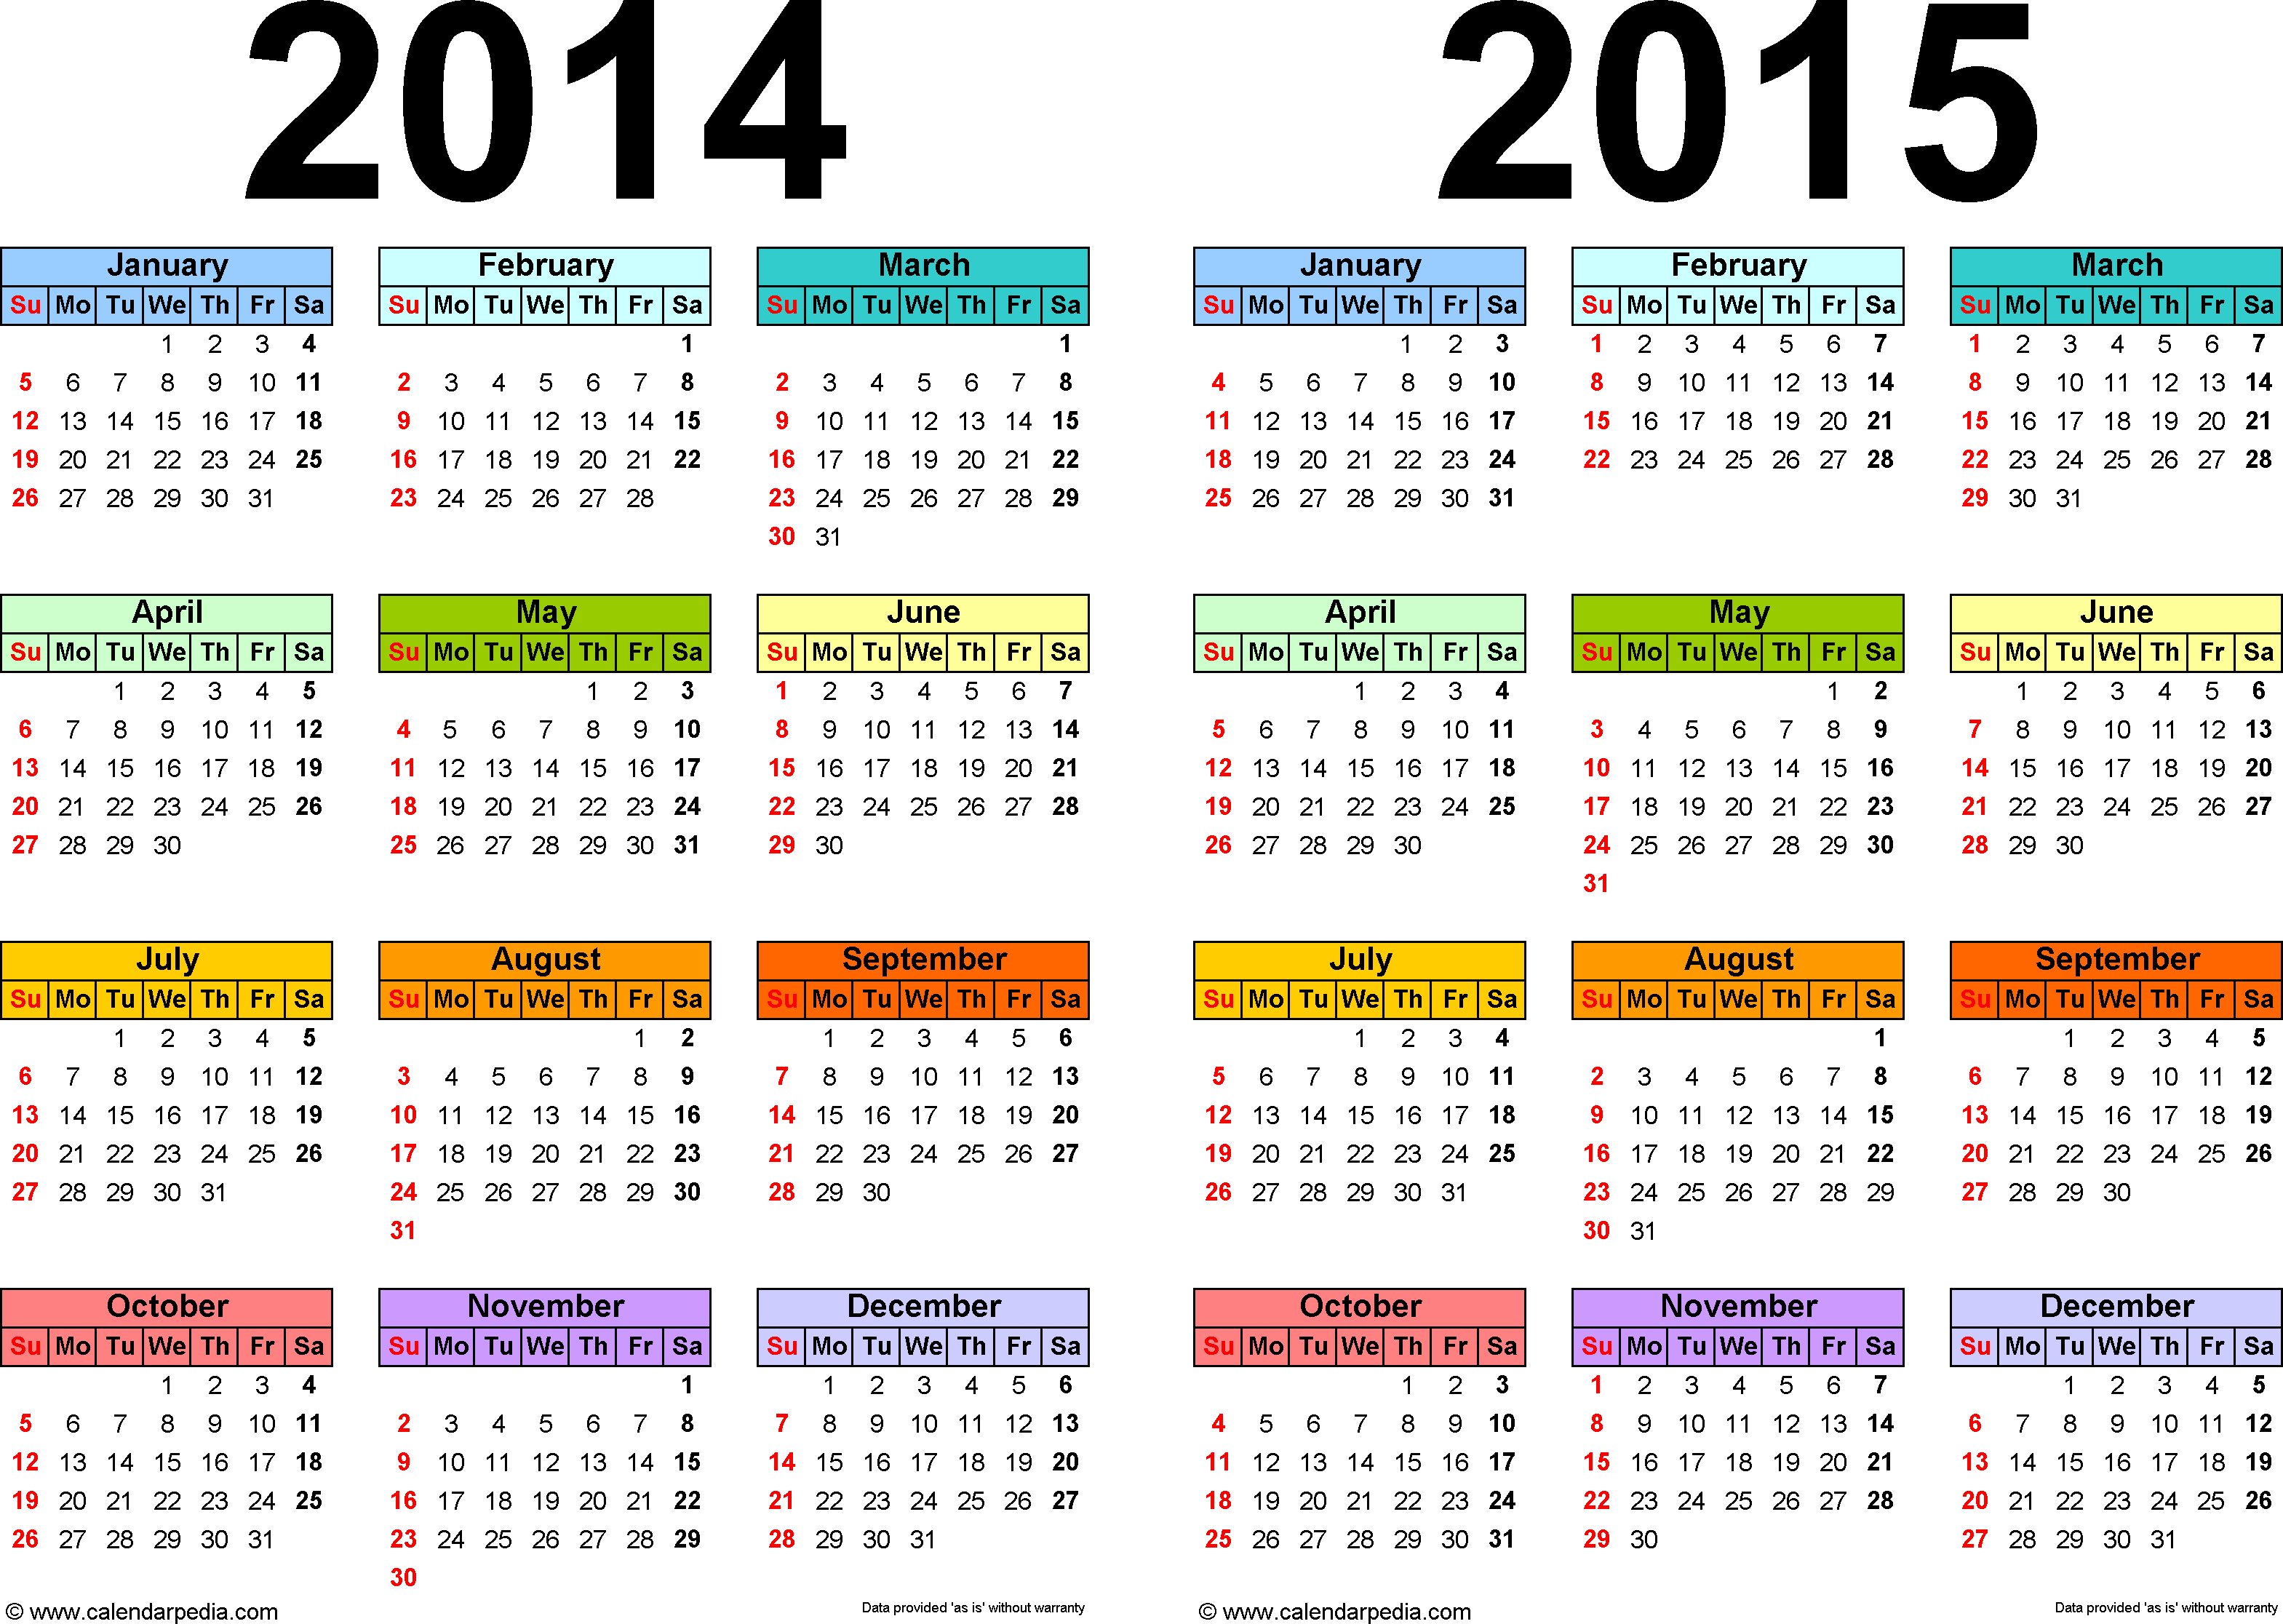 Template 3: Word template for two year calendar 2014/2015 (landscape orientation, 1 page)